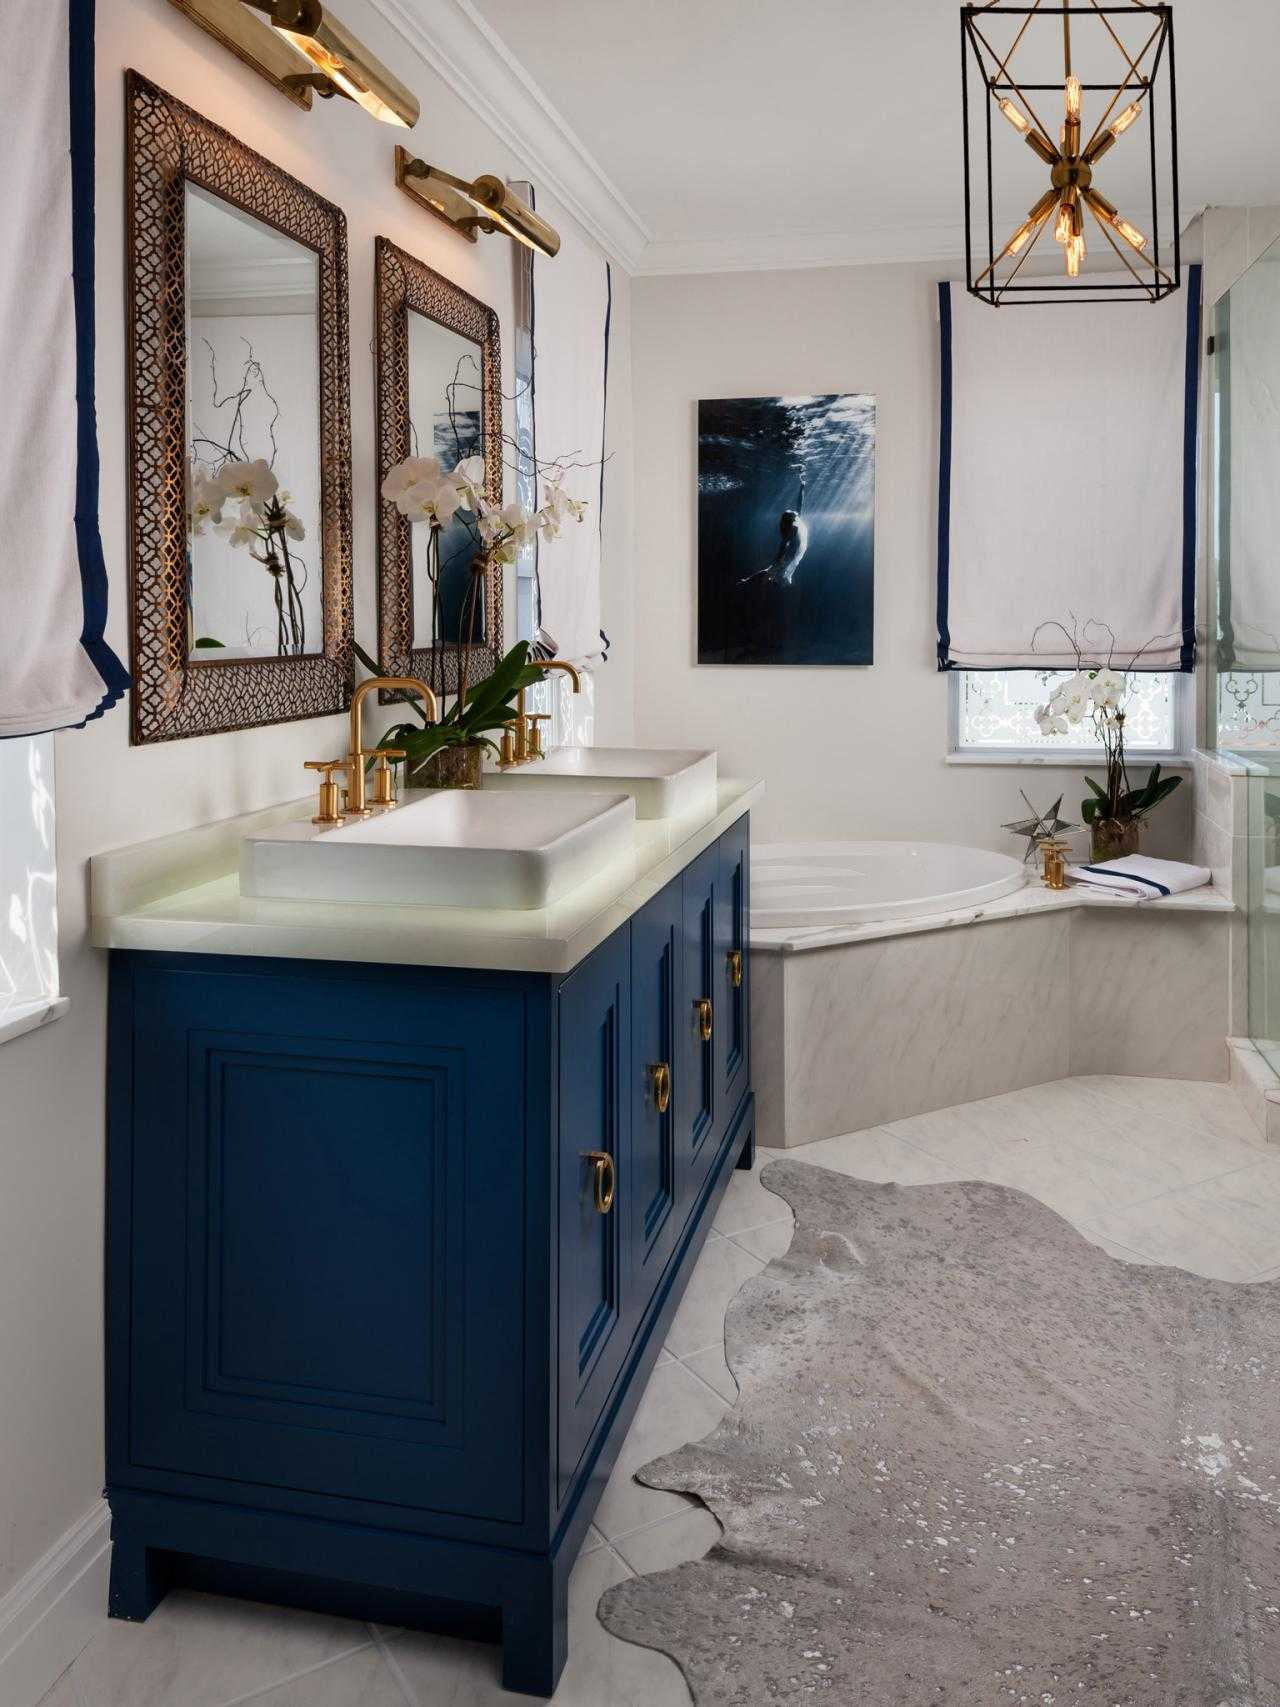 Lovely Blue Bathroom Vanity Cabinet Gallery Also Navy Bath Vanities Design with regard to High Quality Blue Bathroom Vanity Cabinet